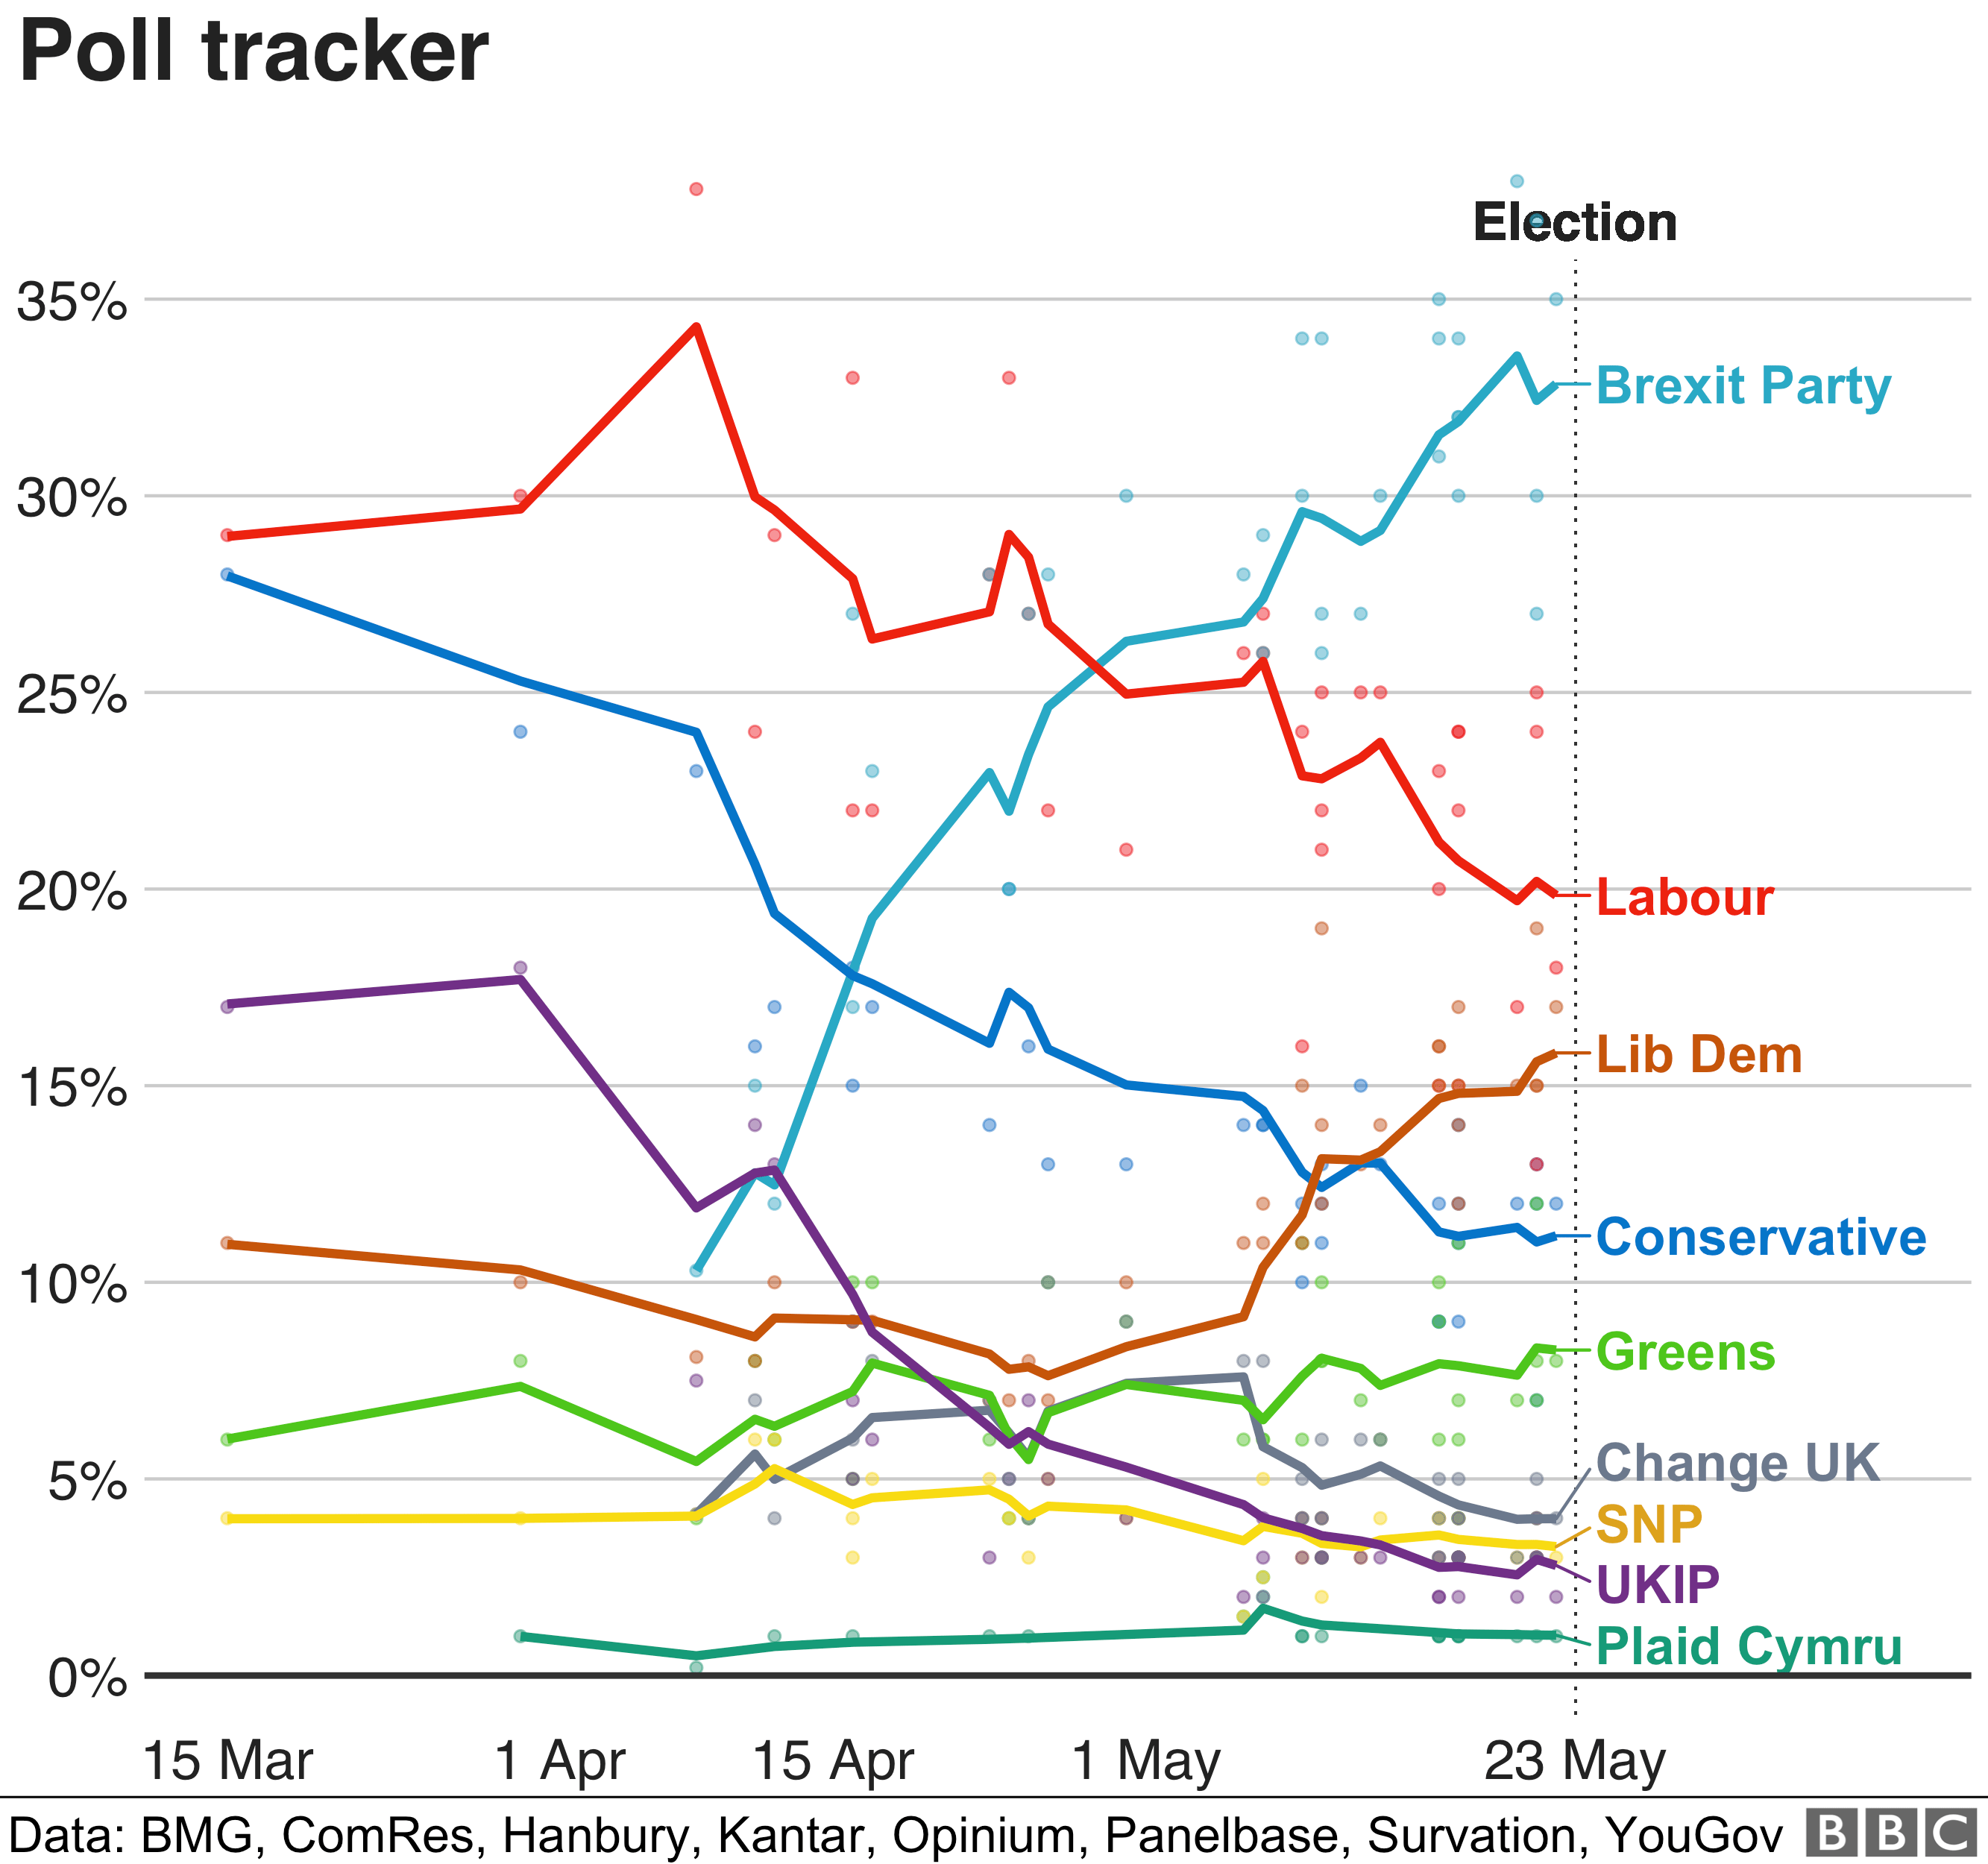 Graph showing support for parties in polls for the Euro elections